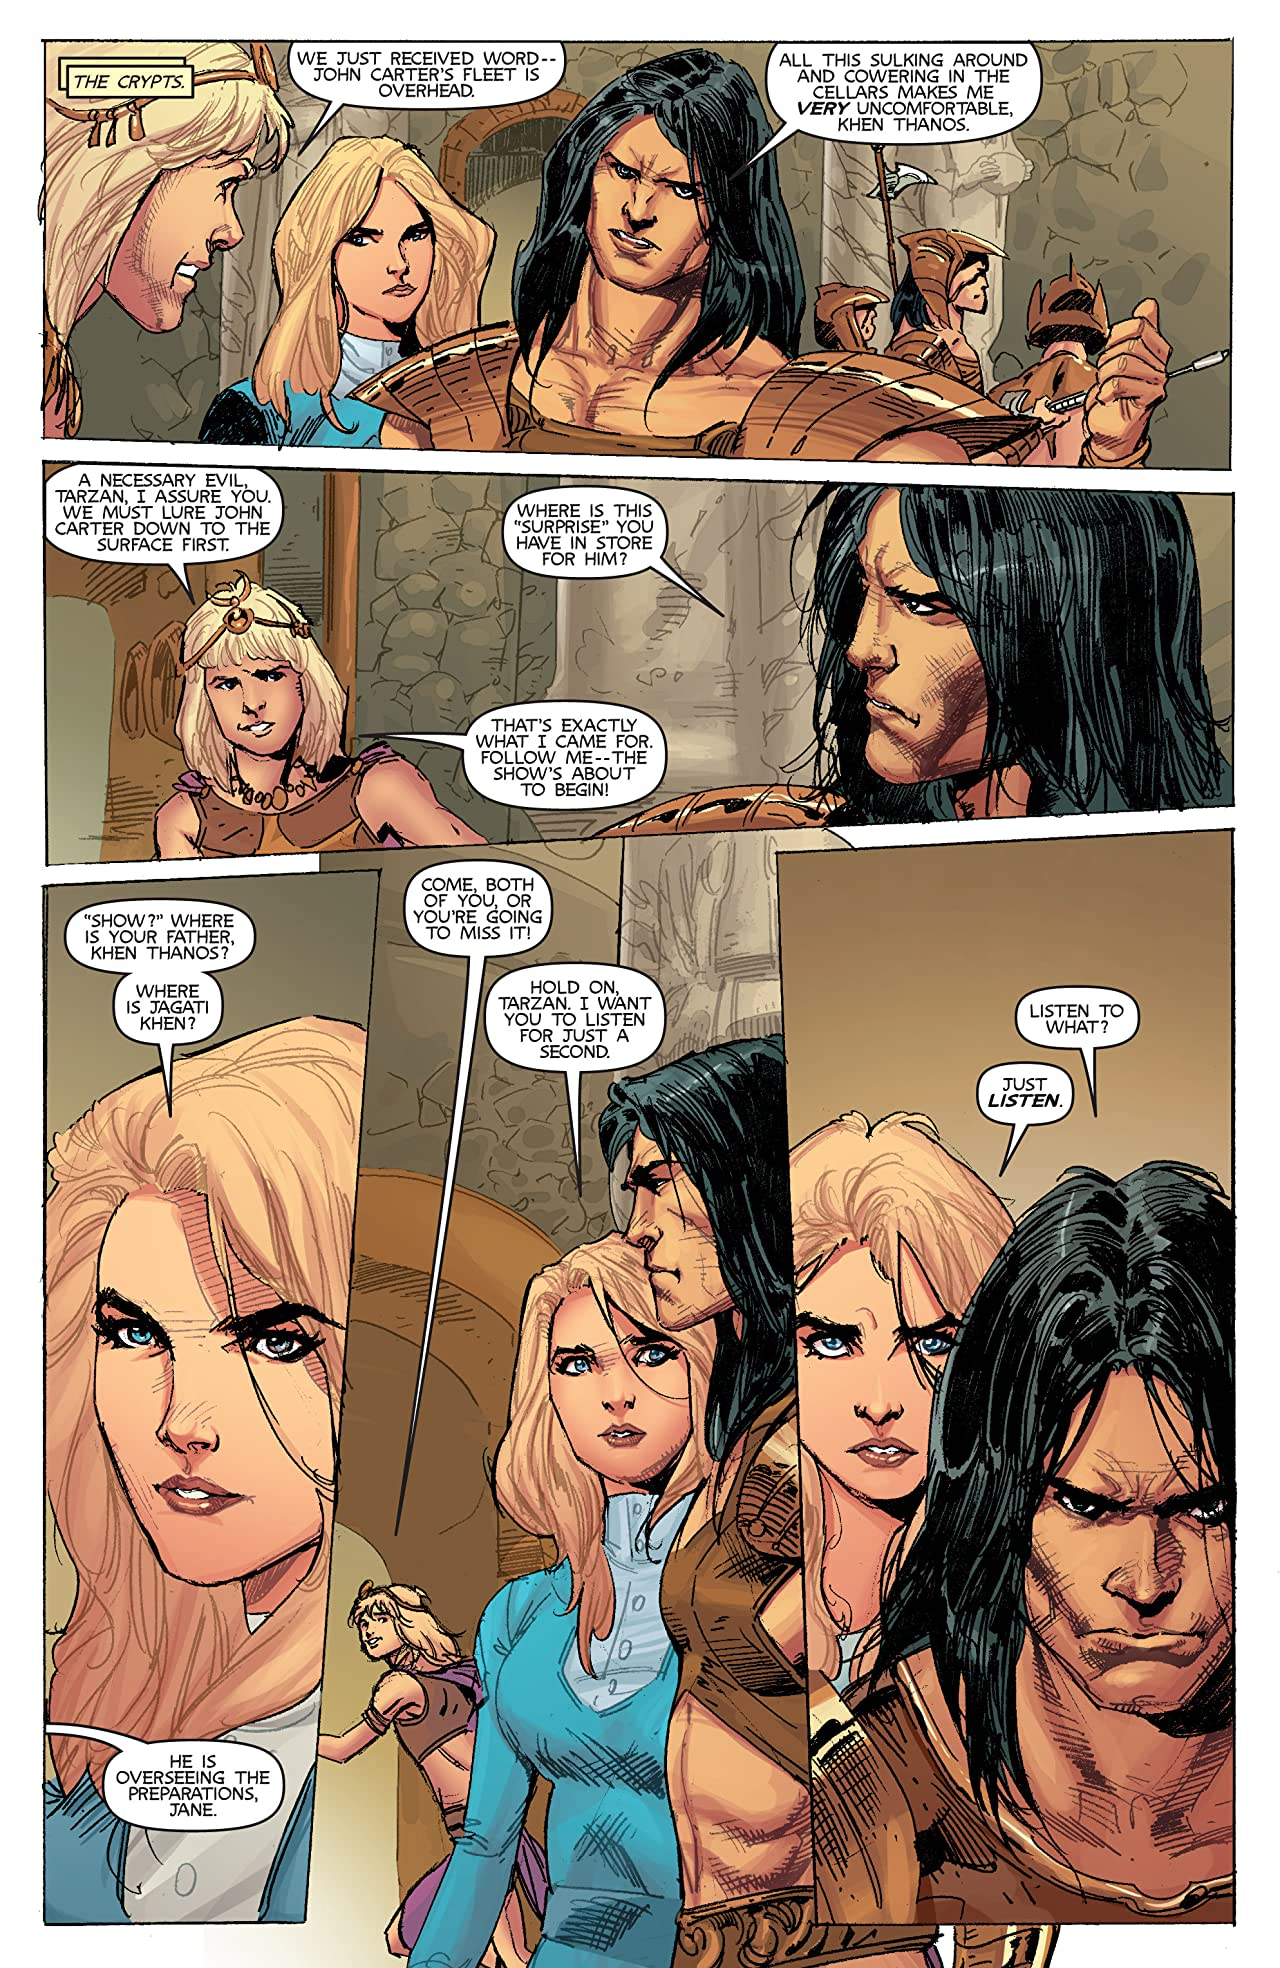 Lords of Mars #4 (of 6)